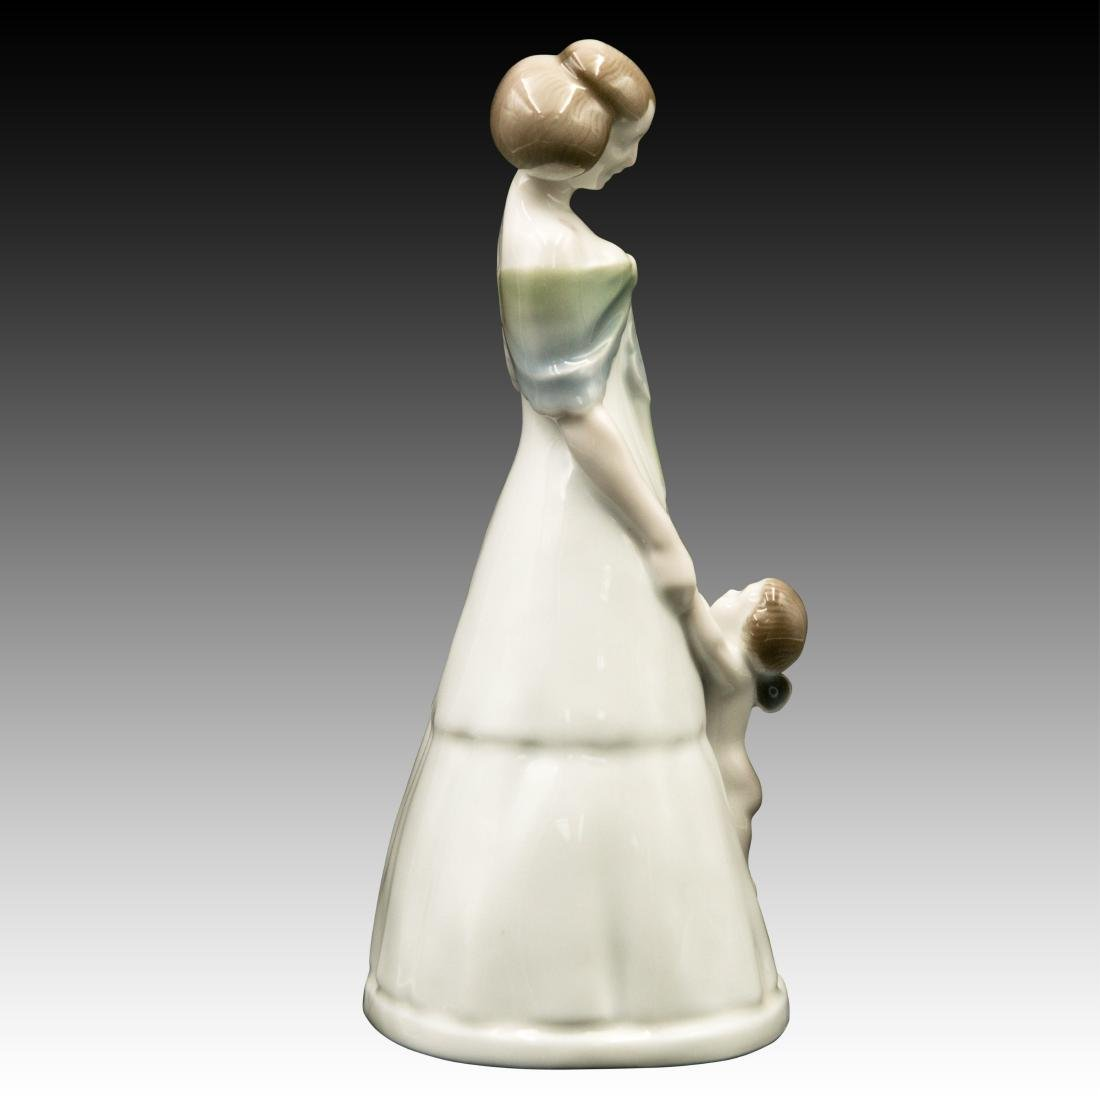 Rosenthal Figurine of Mother and Child - 2